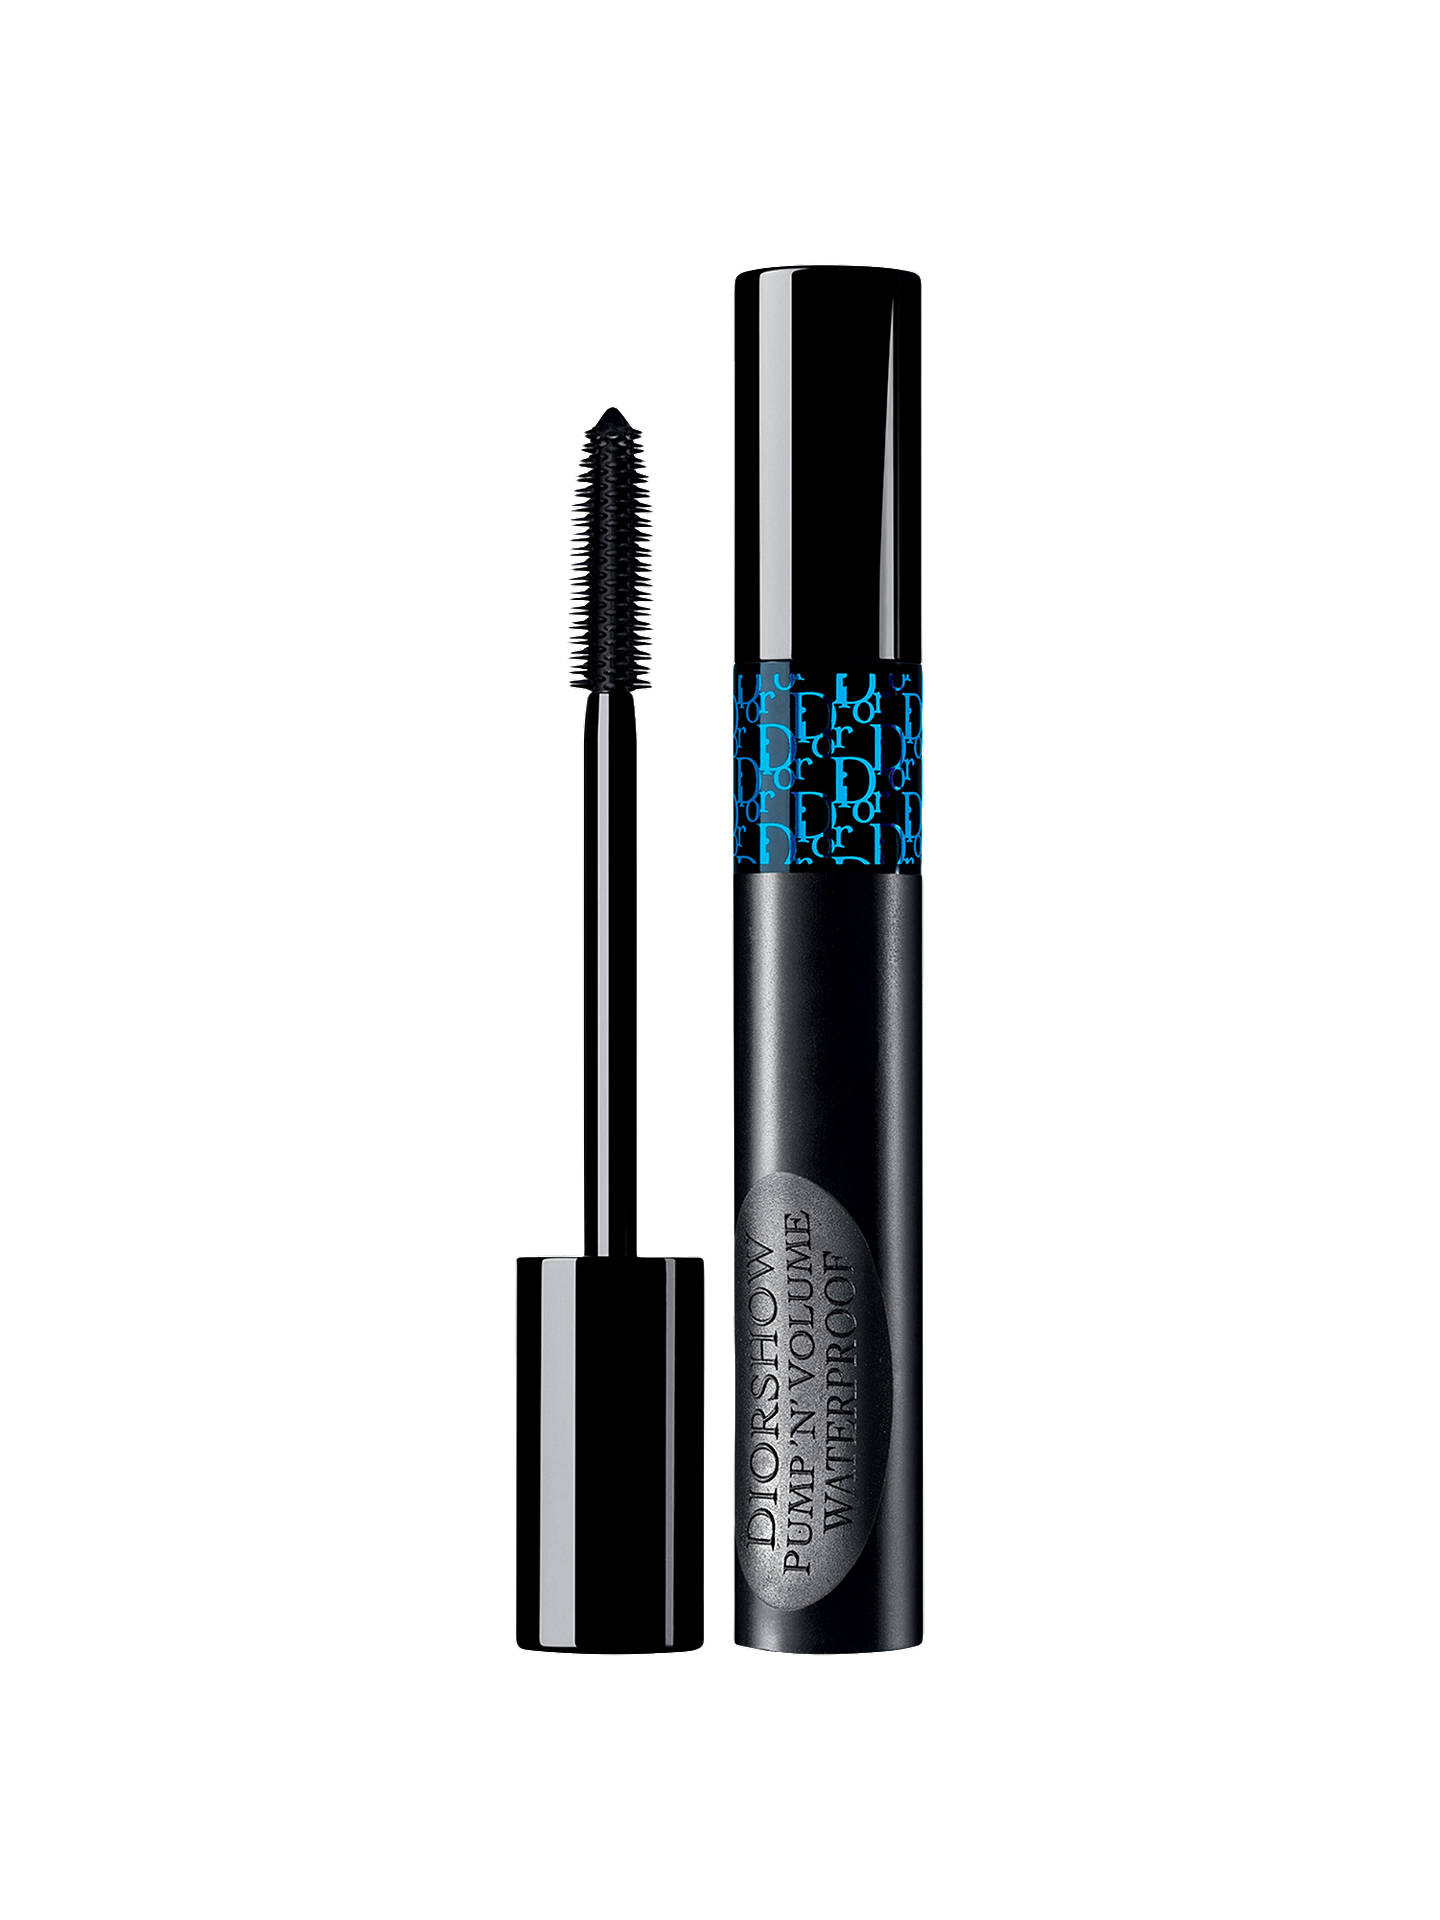 Dior Diorshow Pump N Volume Waterproof Mascara